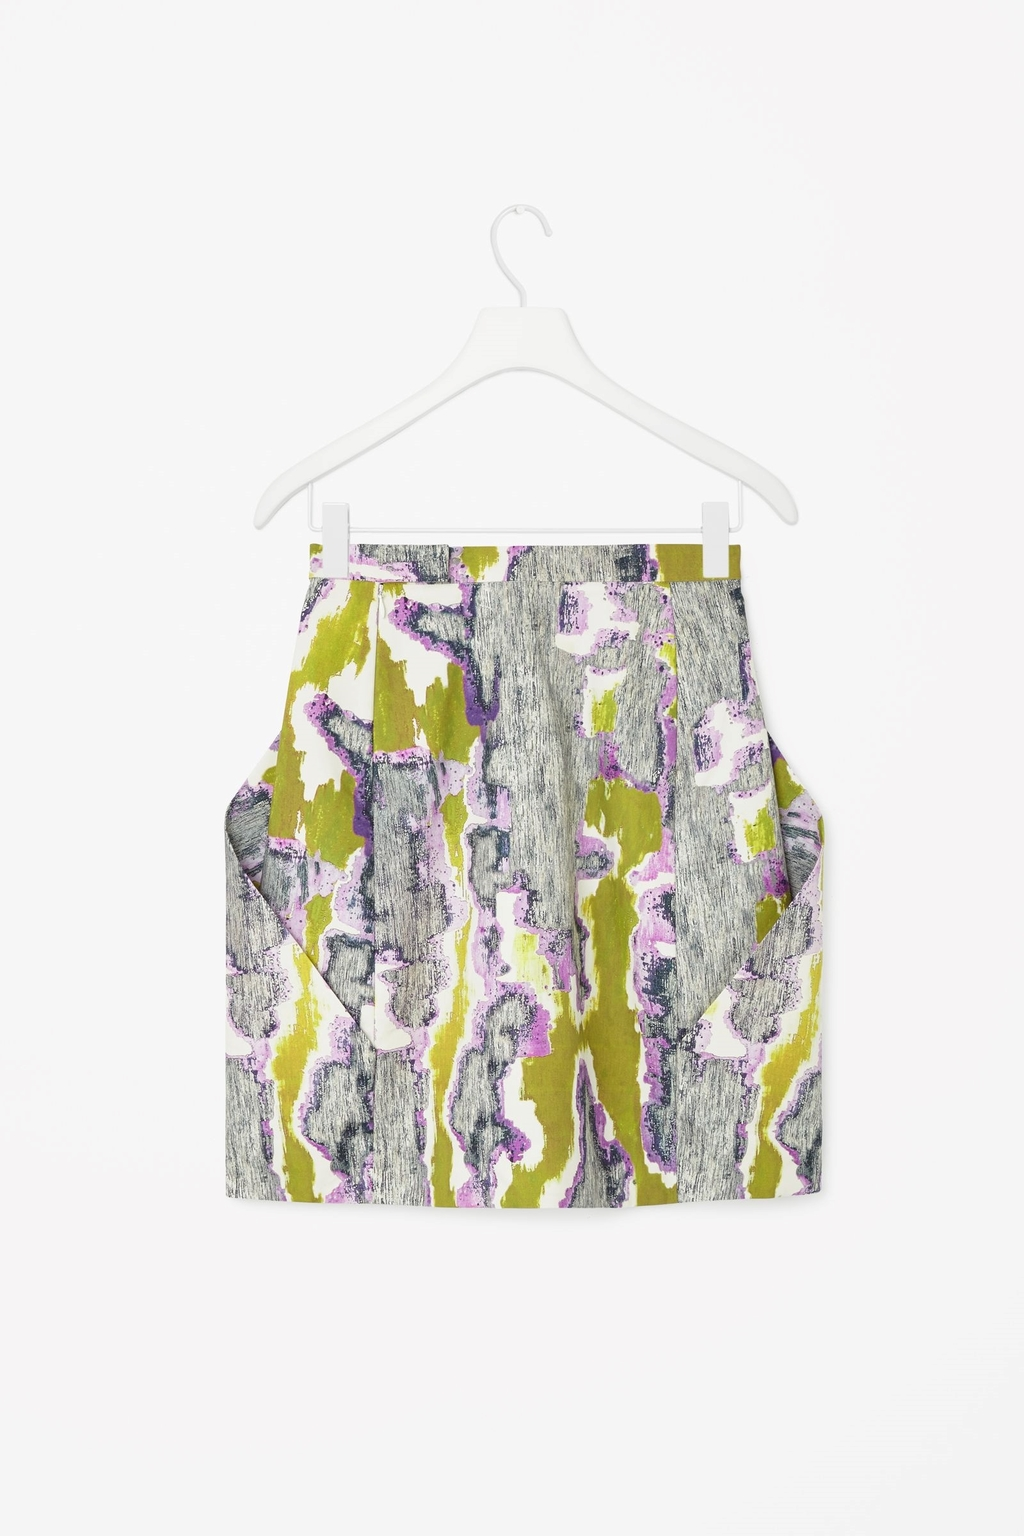 Printed Cotton Skirt - length: mini; style: straight; waist: mid/regular rise; occasions: casual, creative work; fibres: cotton - 100%; waist detail: feature waist detail; predominant colour: multicoloured; texture group: cotton feel fabrics; fit: straight cut; pattern type: fabric; pattern: patterned/print; season: s/s 2015; pattern size: big & busy (bottom); multicoloured: multicoloured; wardrobe: highlight